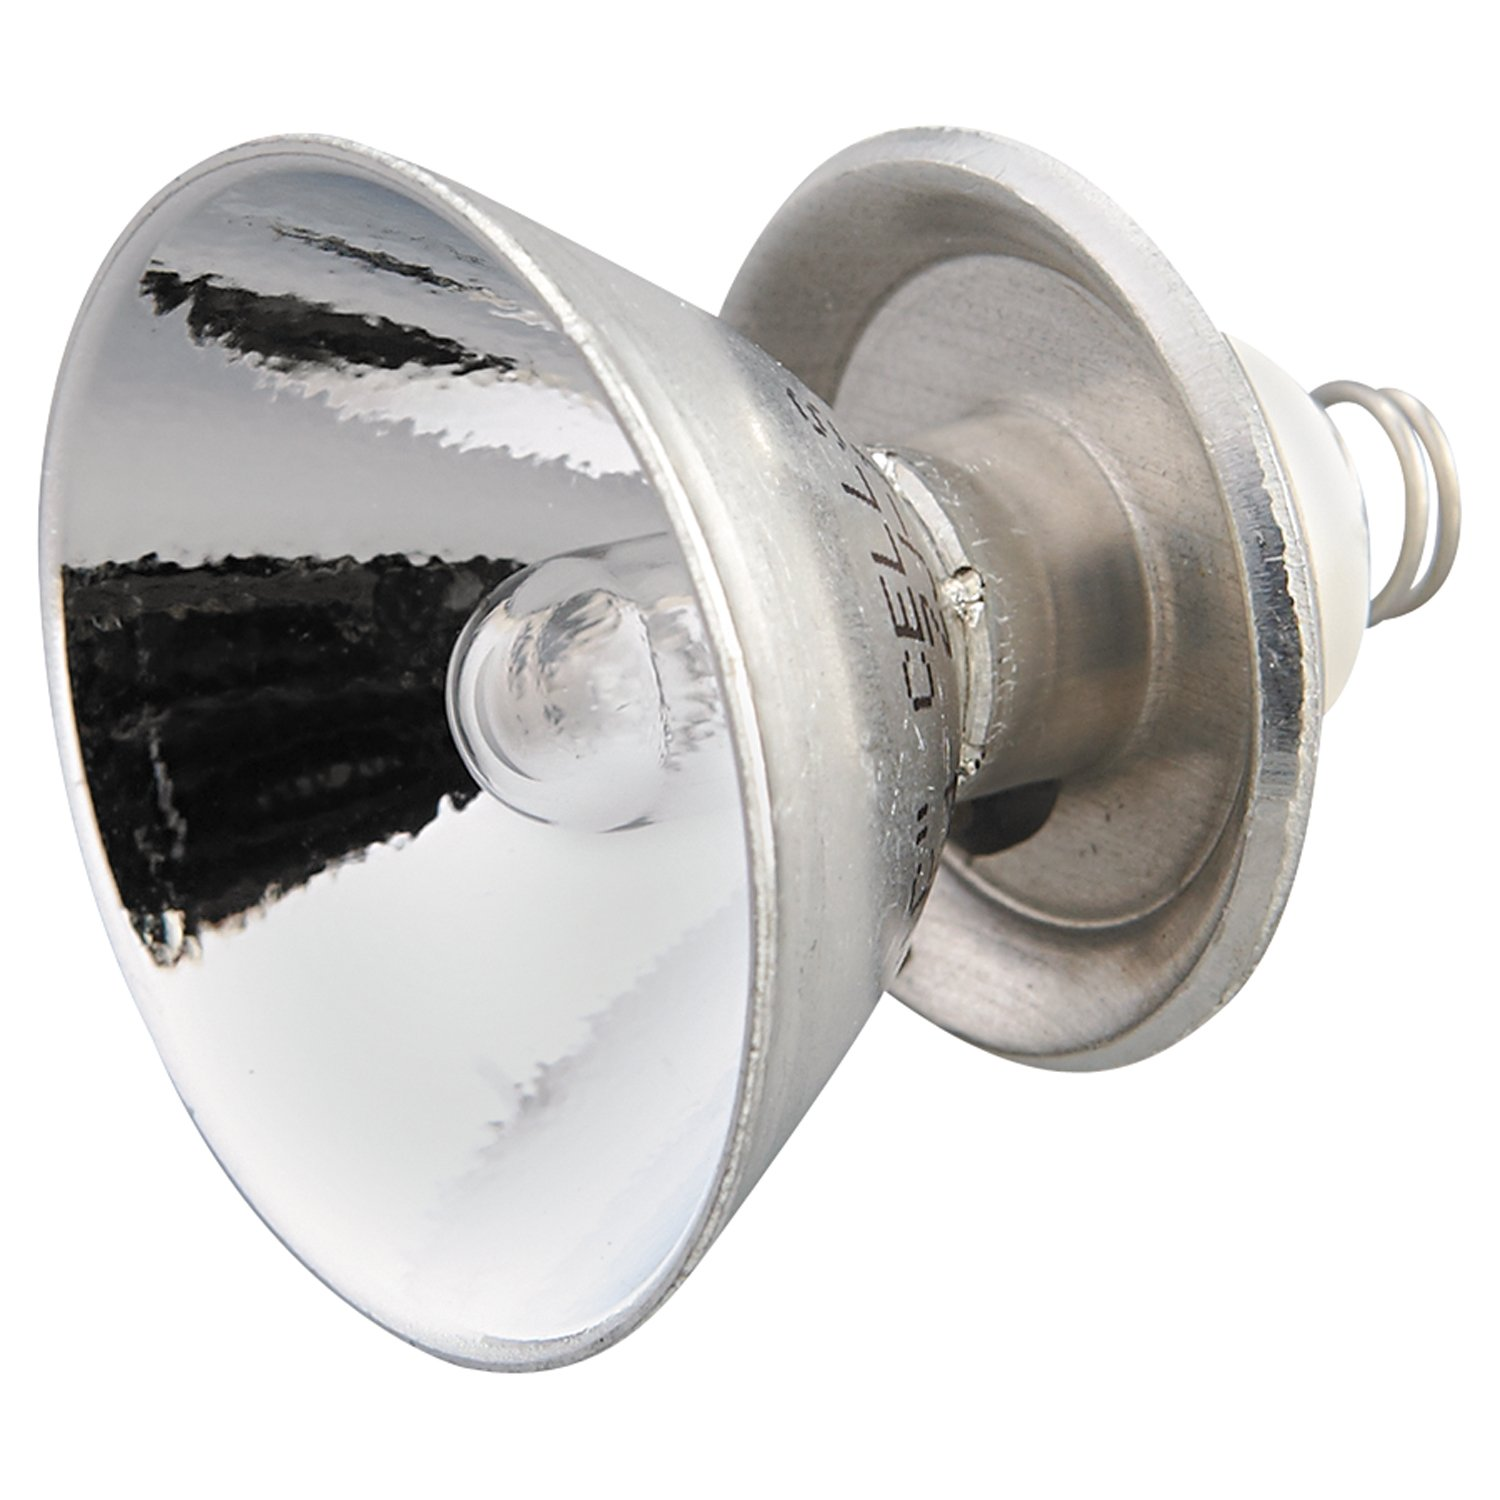 Xenon Bulb Module for Use with 2000C Pelican 2004 SabreLite 2000 Lamp Replacement Modules